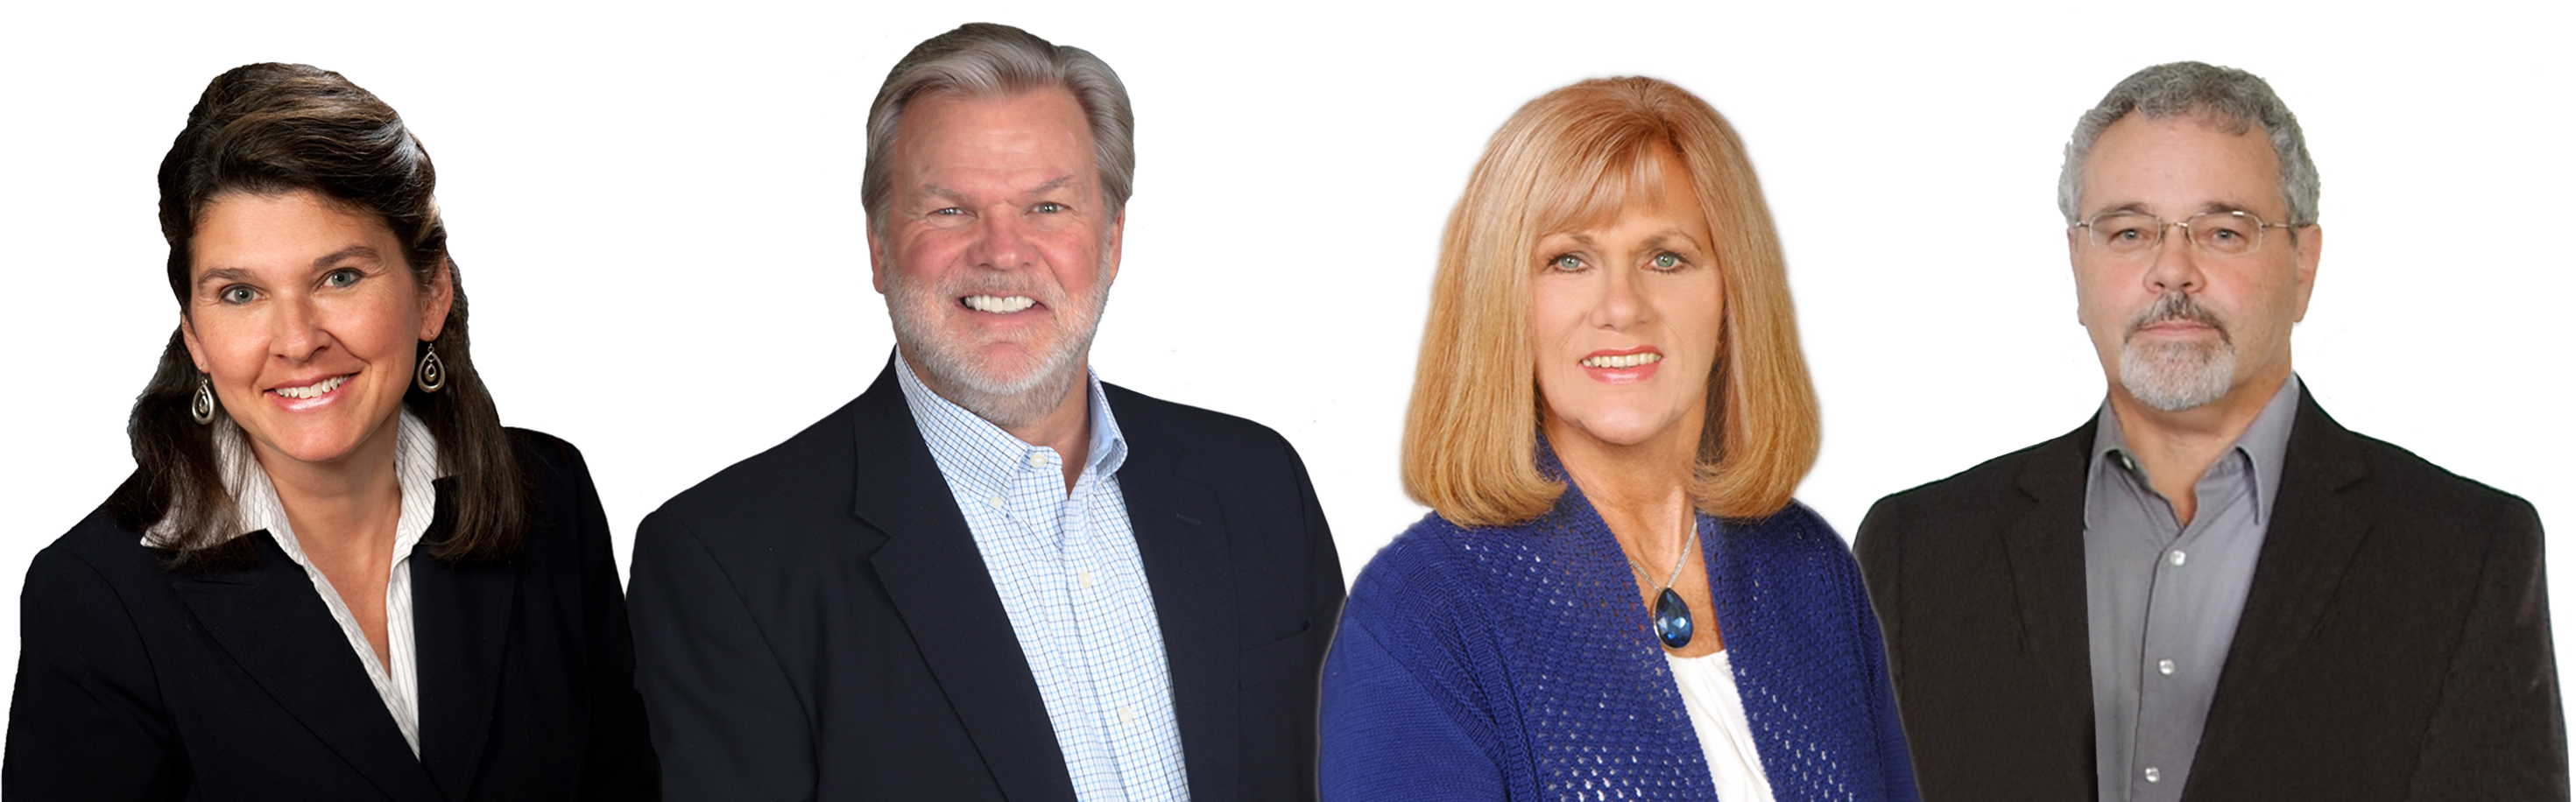 Unruh Realty Agents